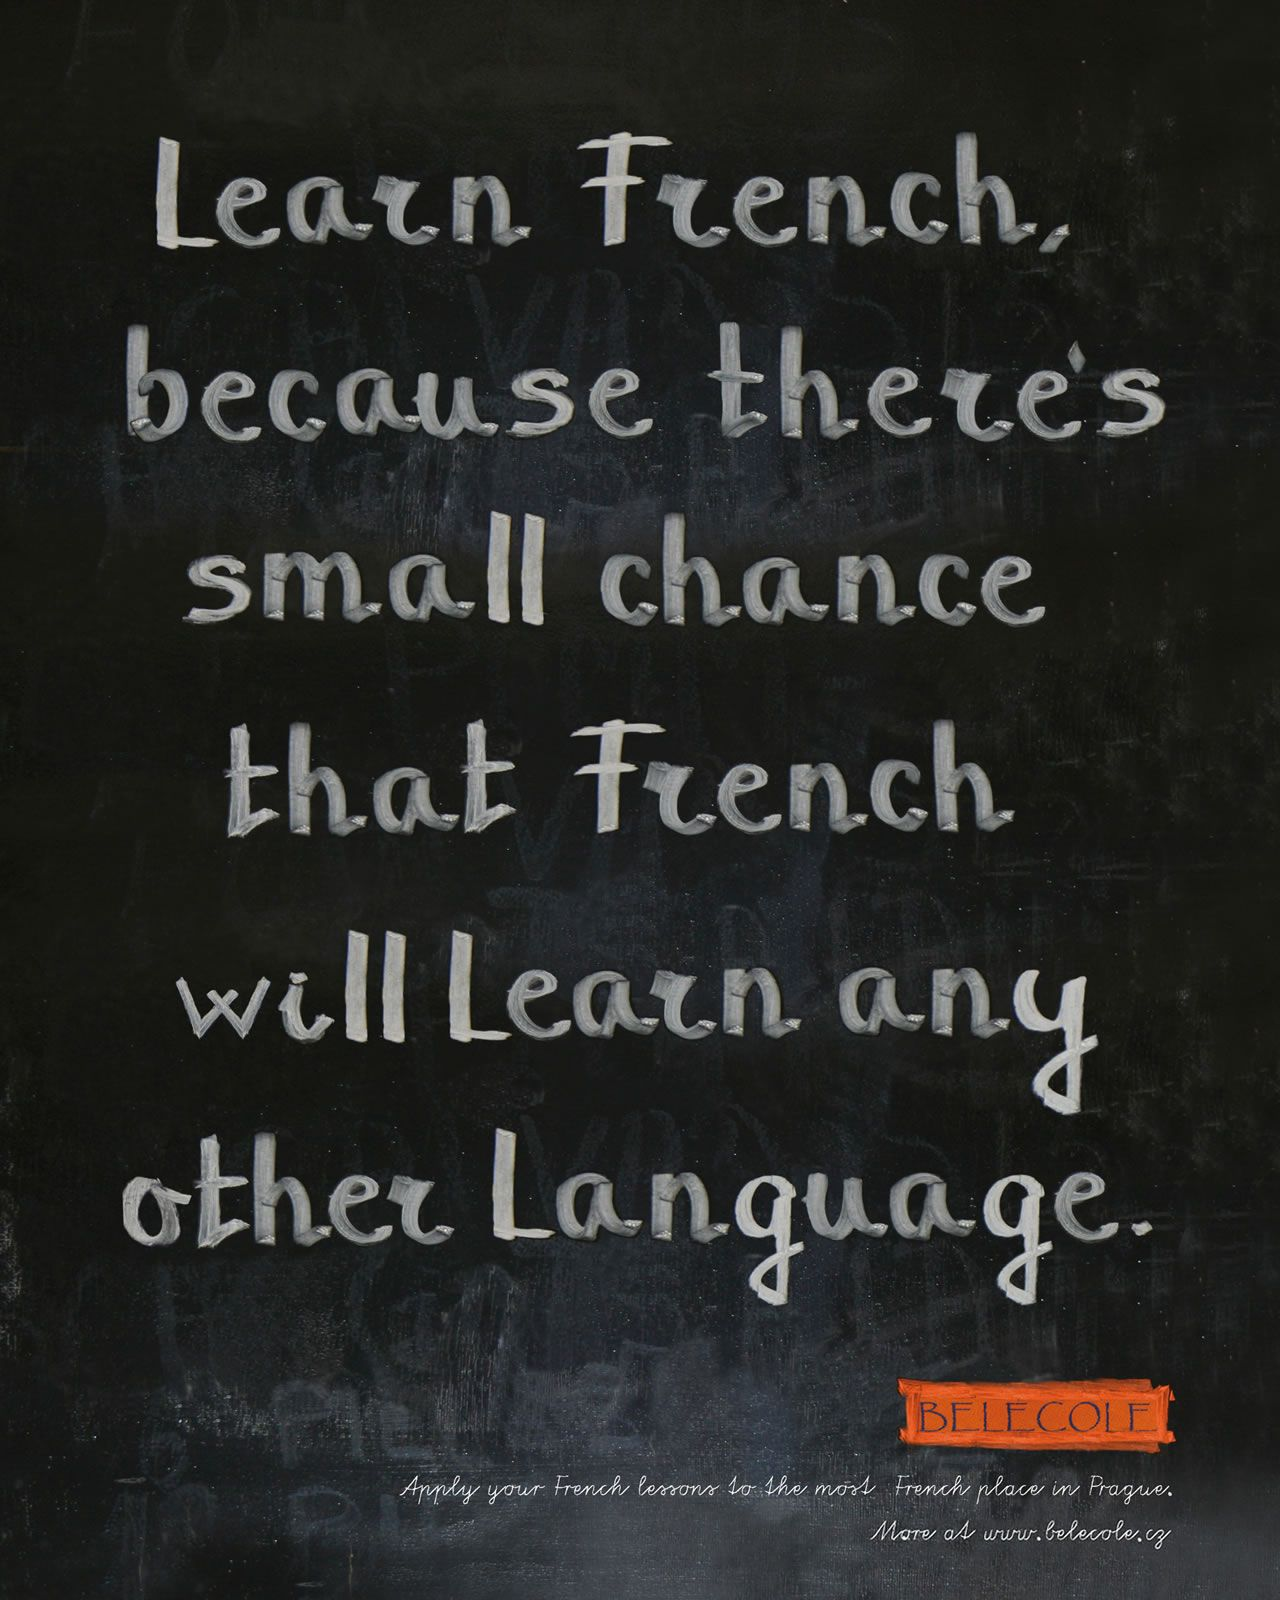 Hahaha True Story  Learn French Because ThereS Small Chance